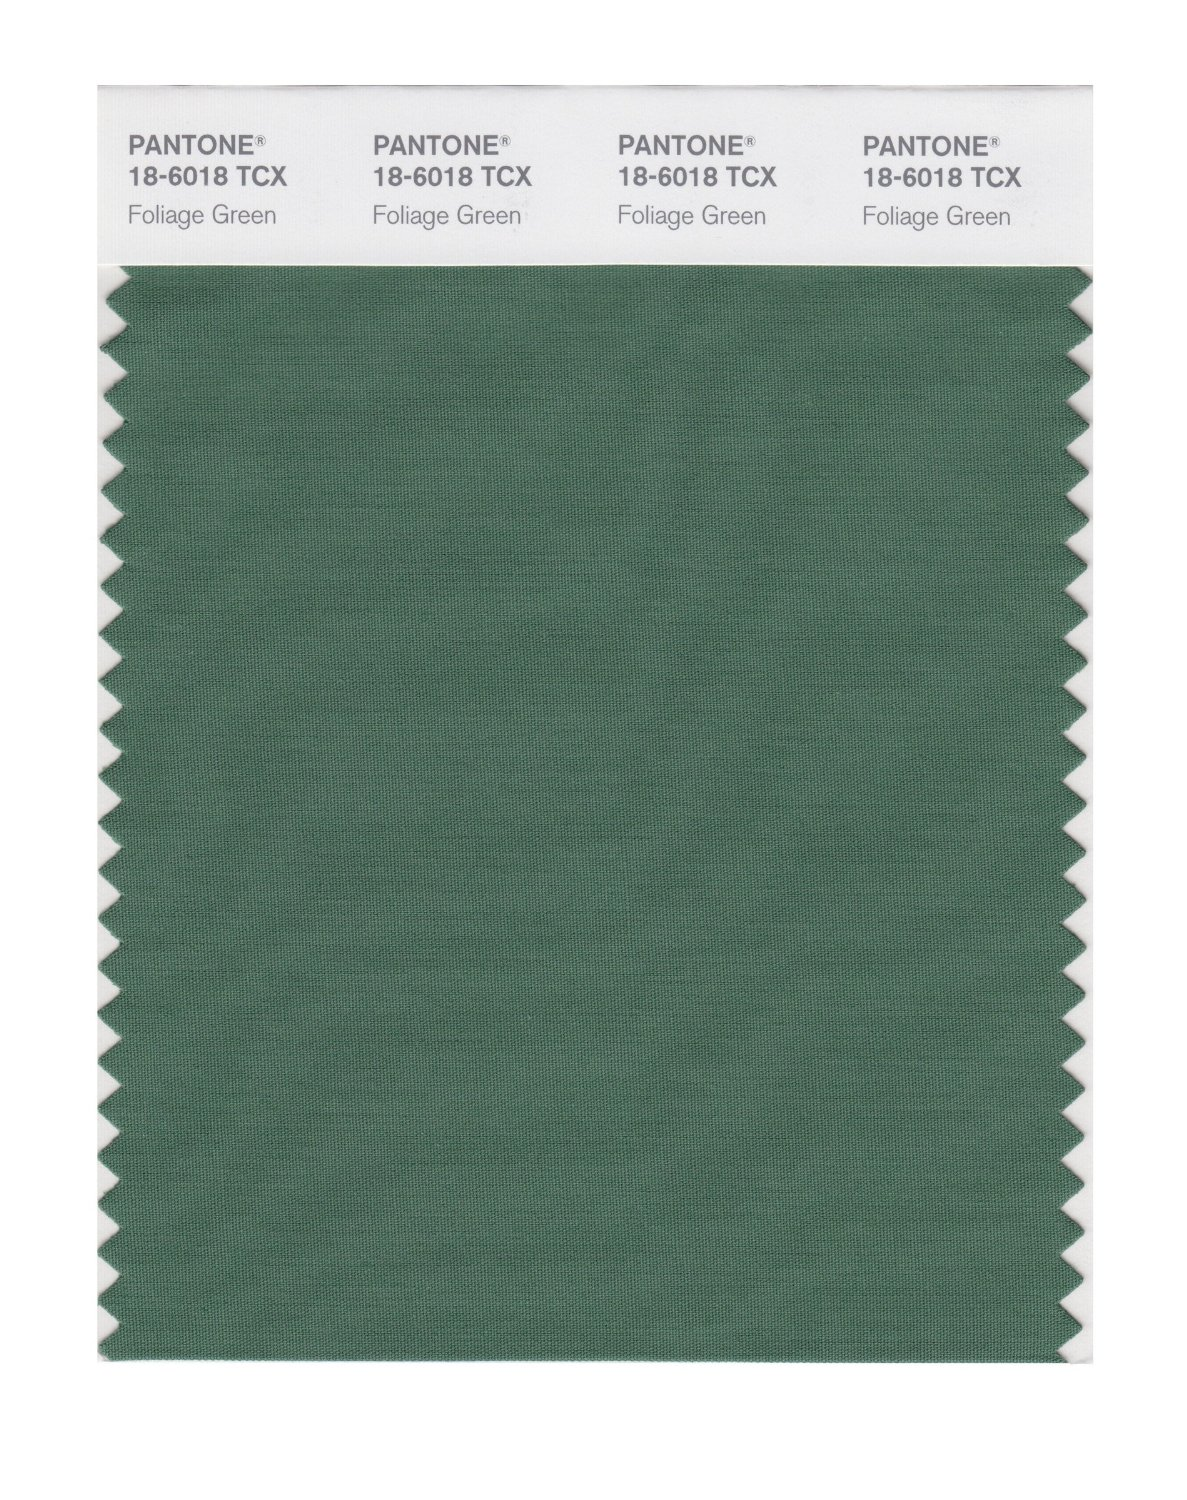 Pantone Smart Swatch 18-6018 Foliage Green